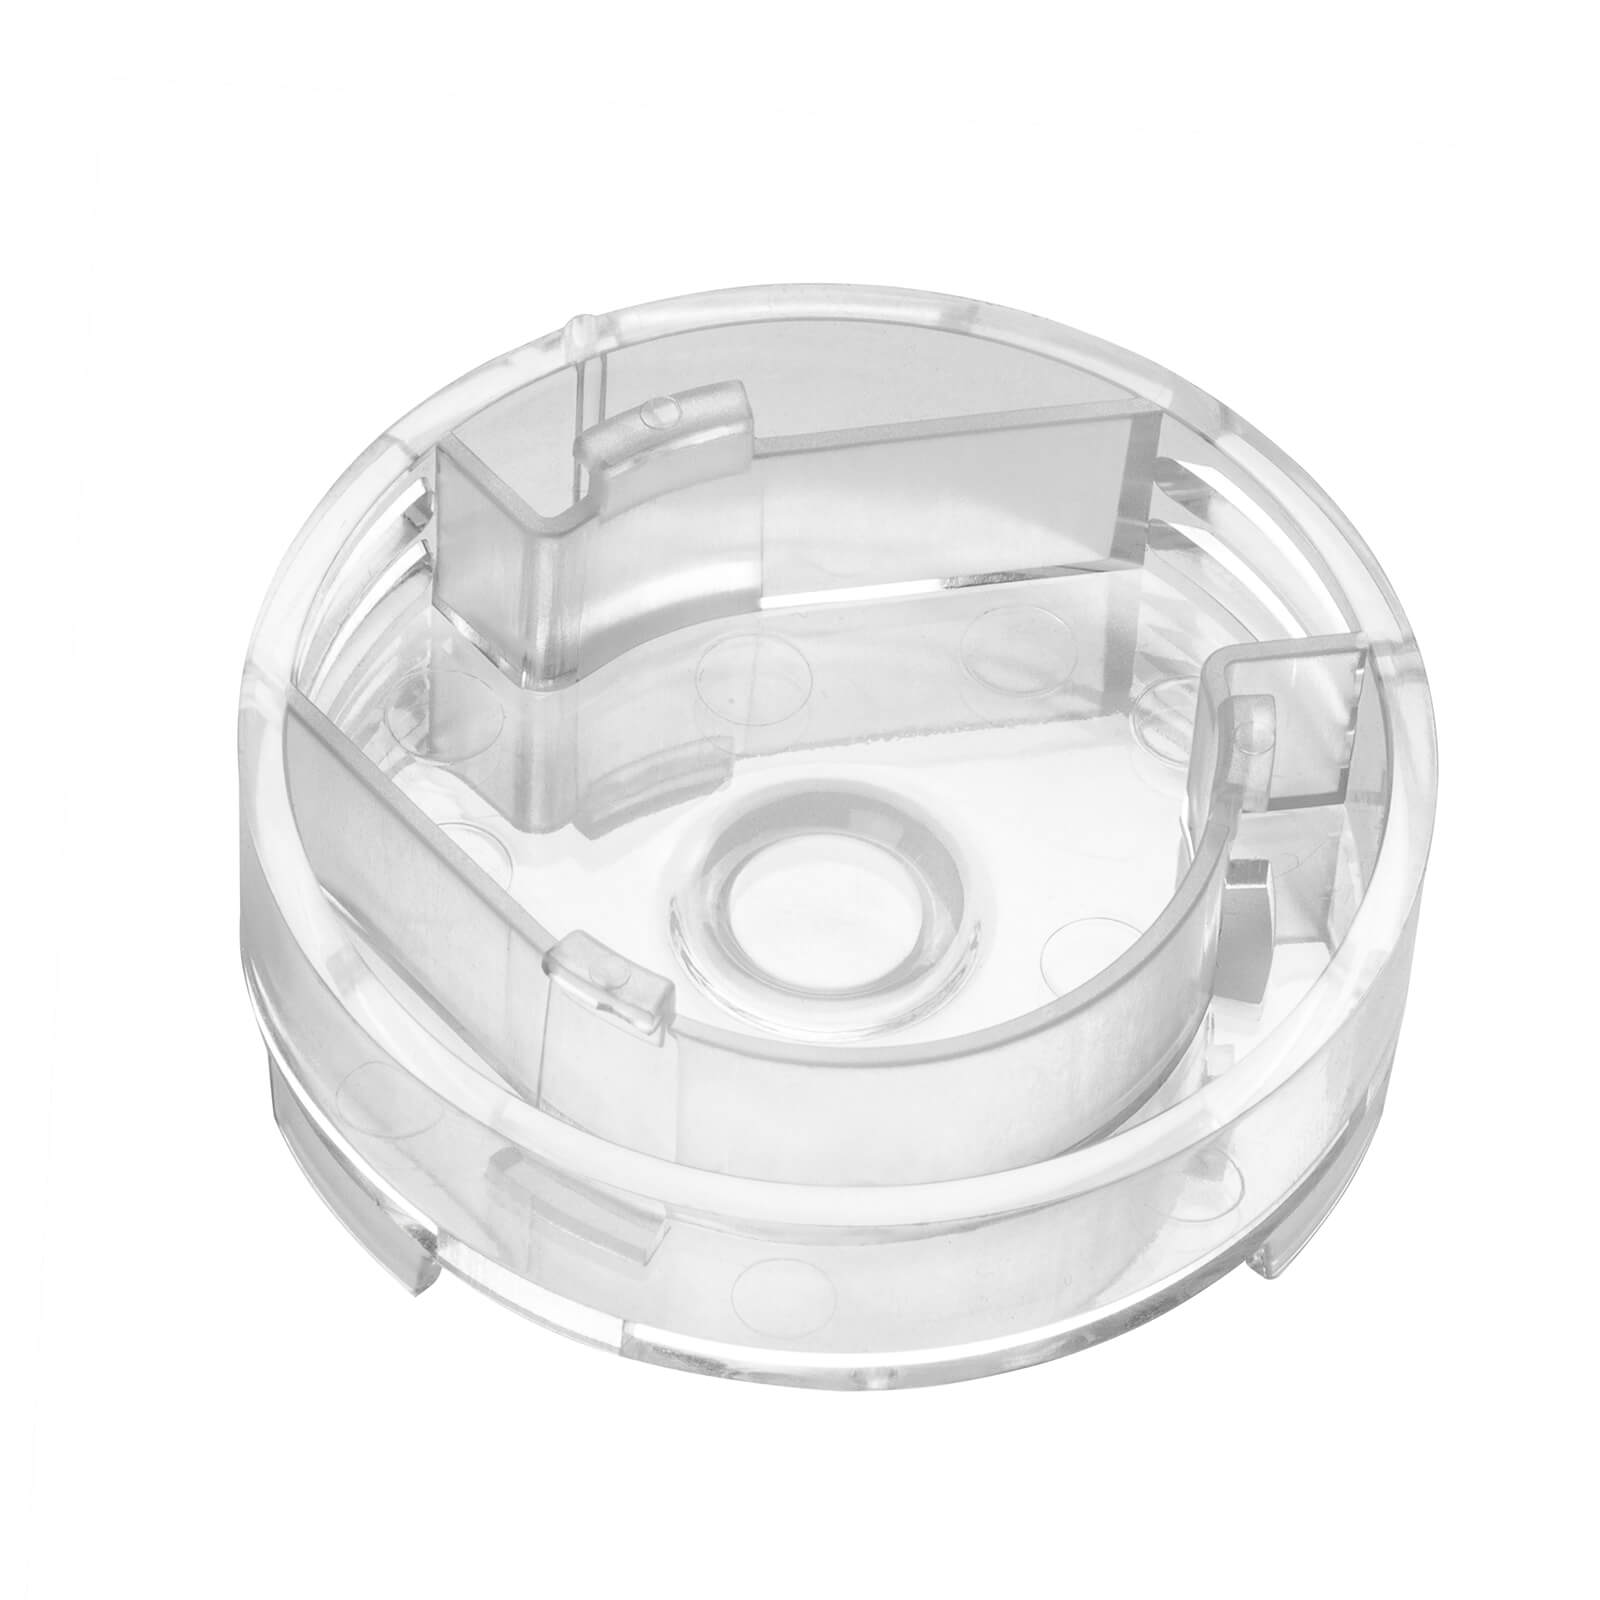 Transparent water outlet cover Sous Vide Cooker Accessories